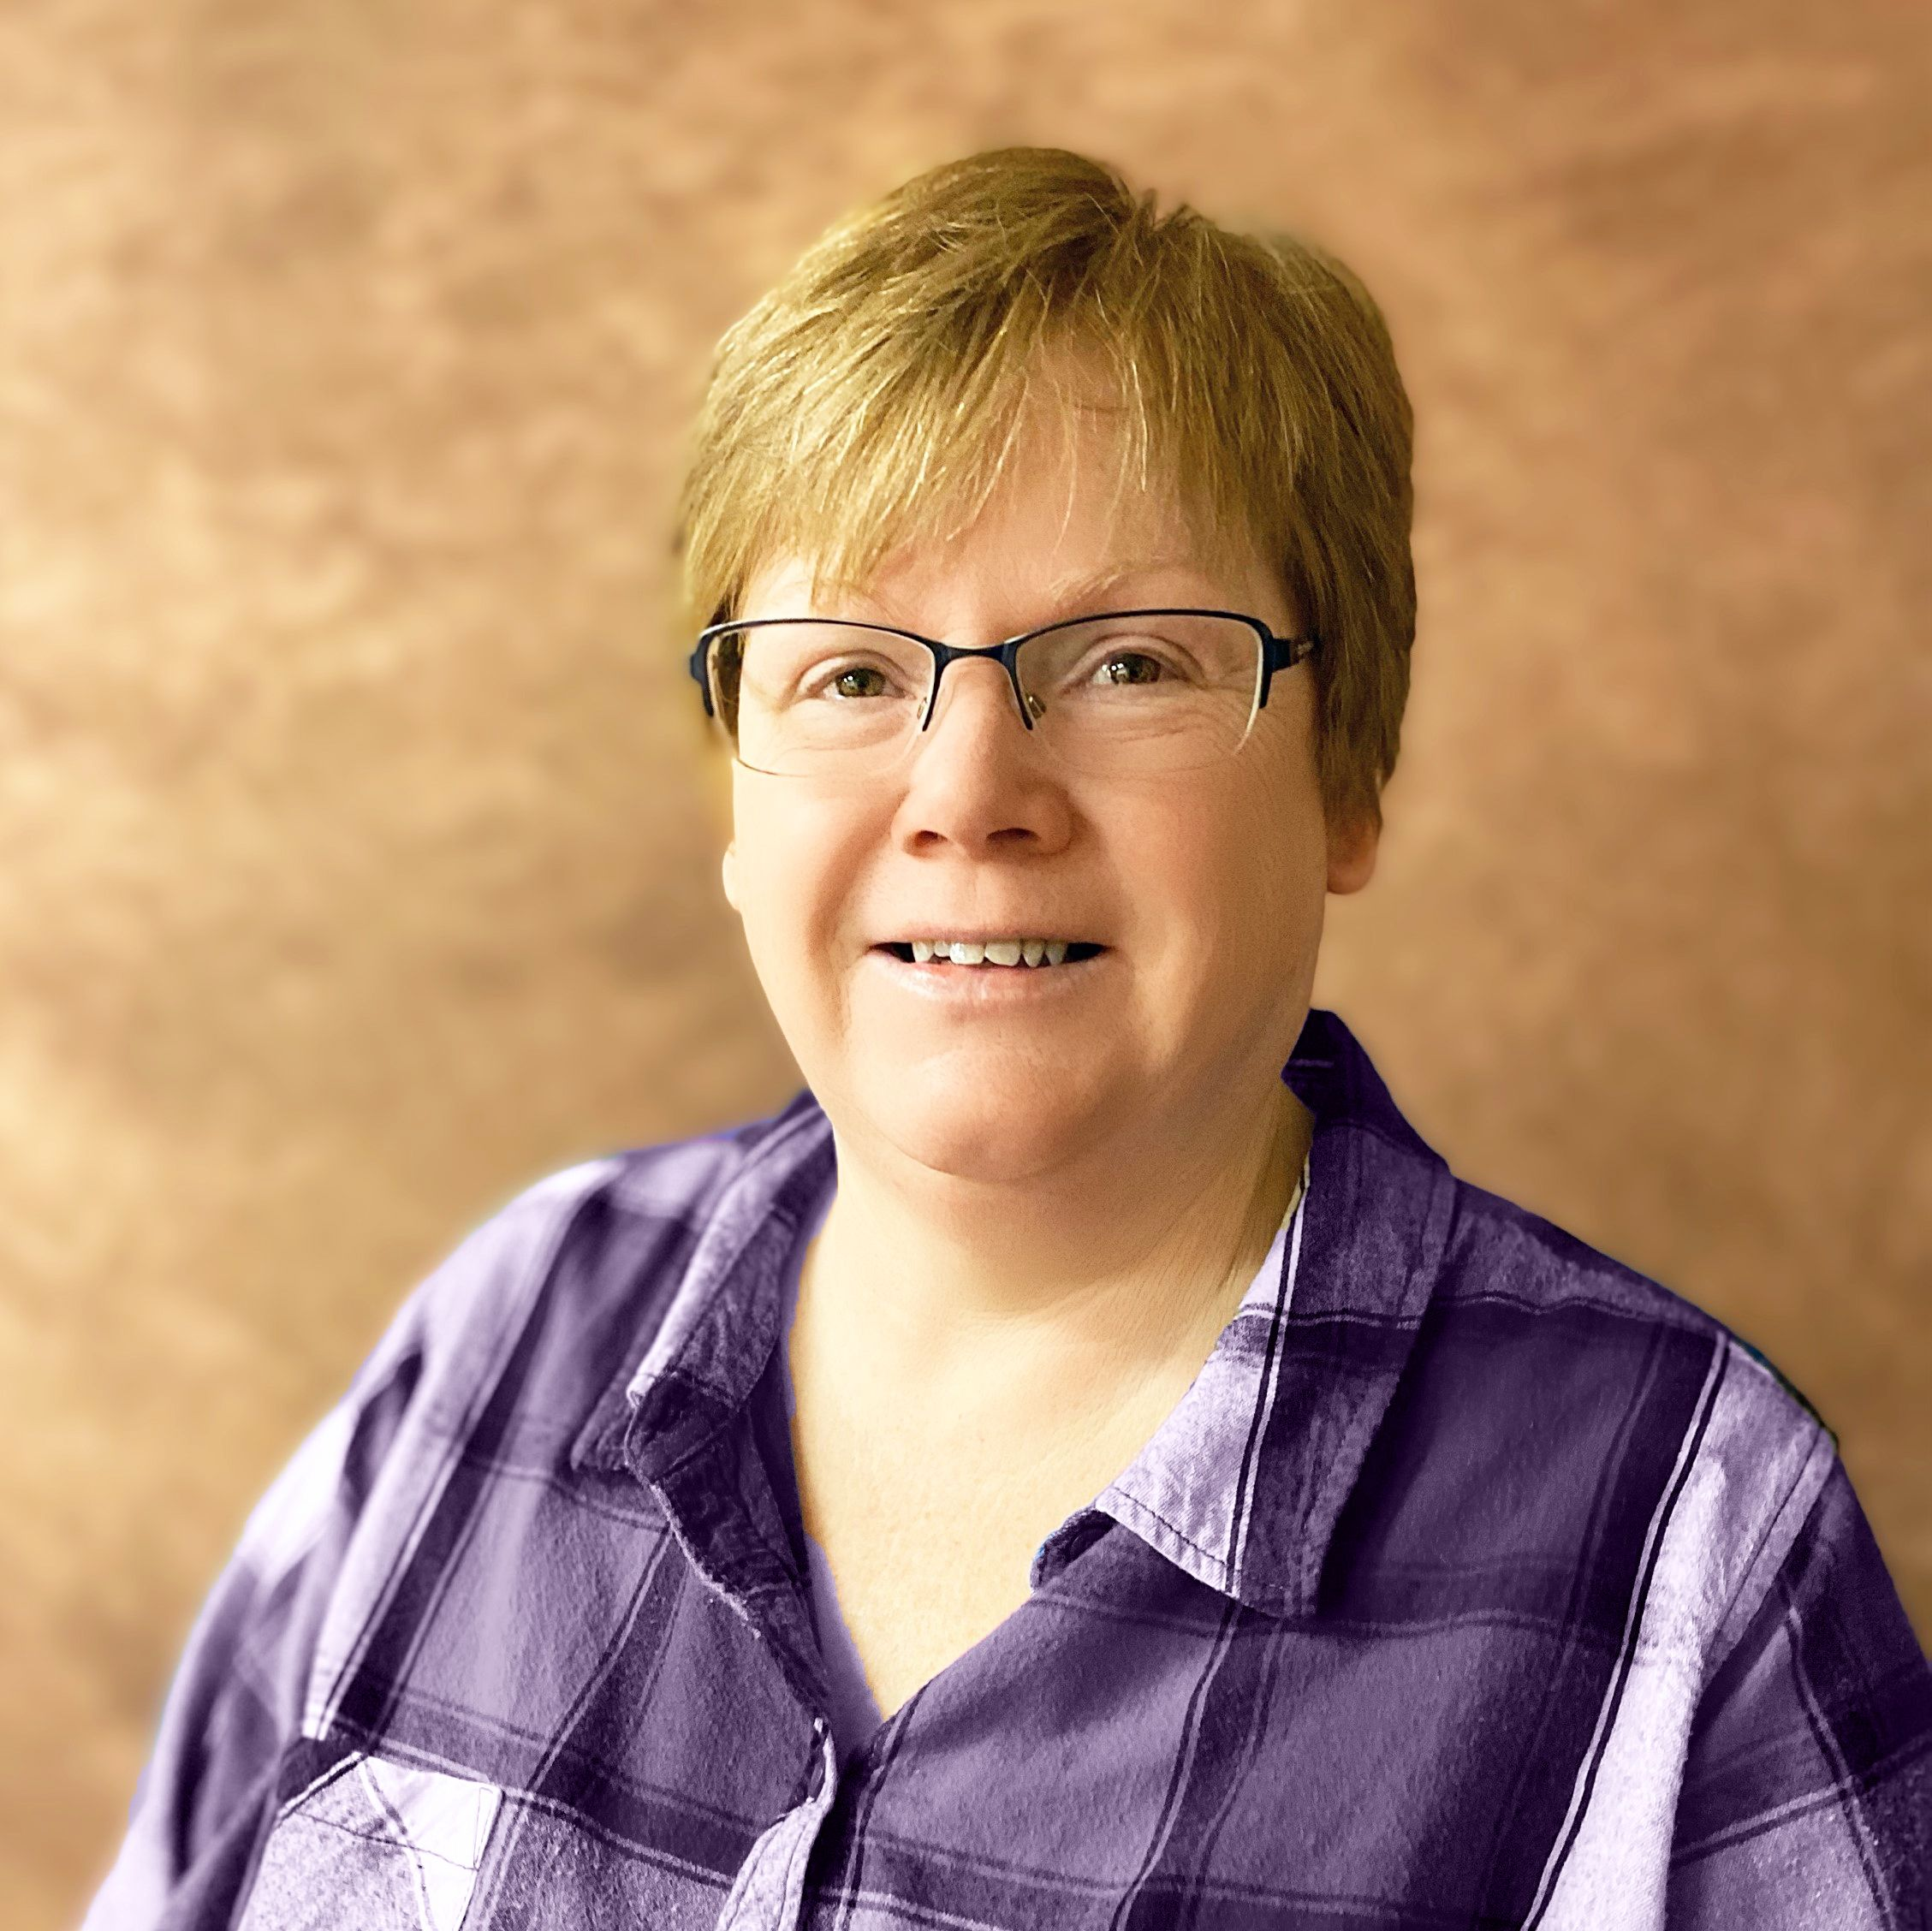 Connie Kralicek, Director of Community & Day Supports